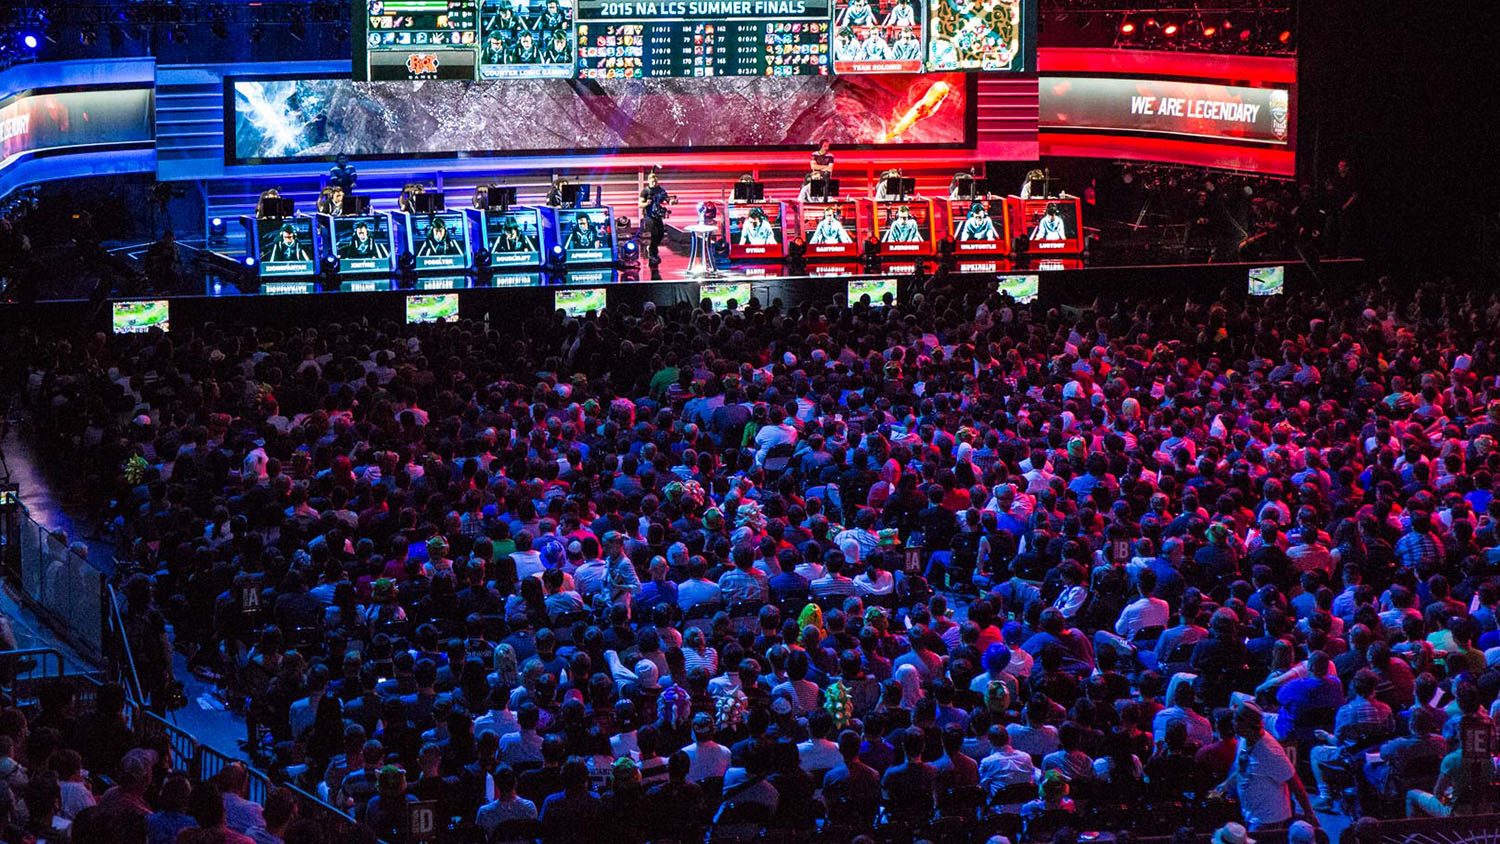 Madision Square Garden: Esports Hit NYC's Big 'League,' Packing Madison Square Garden